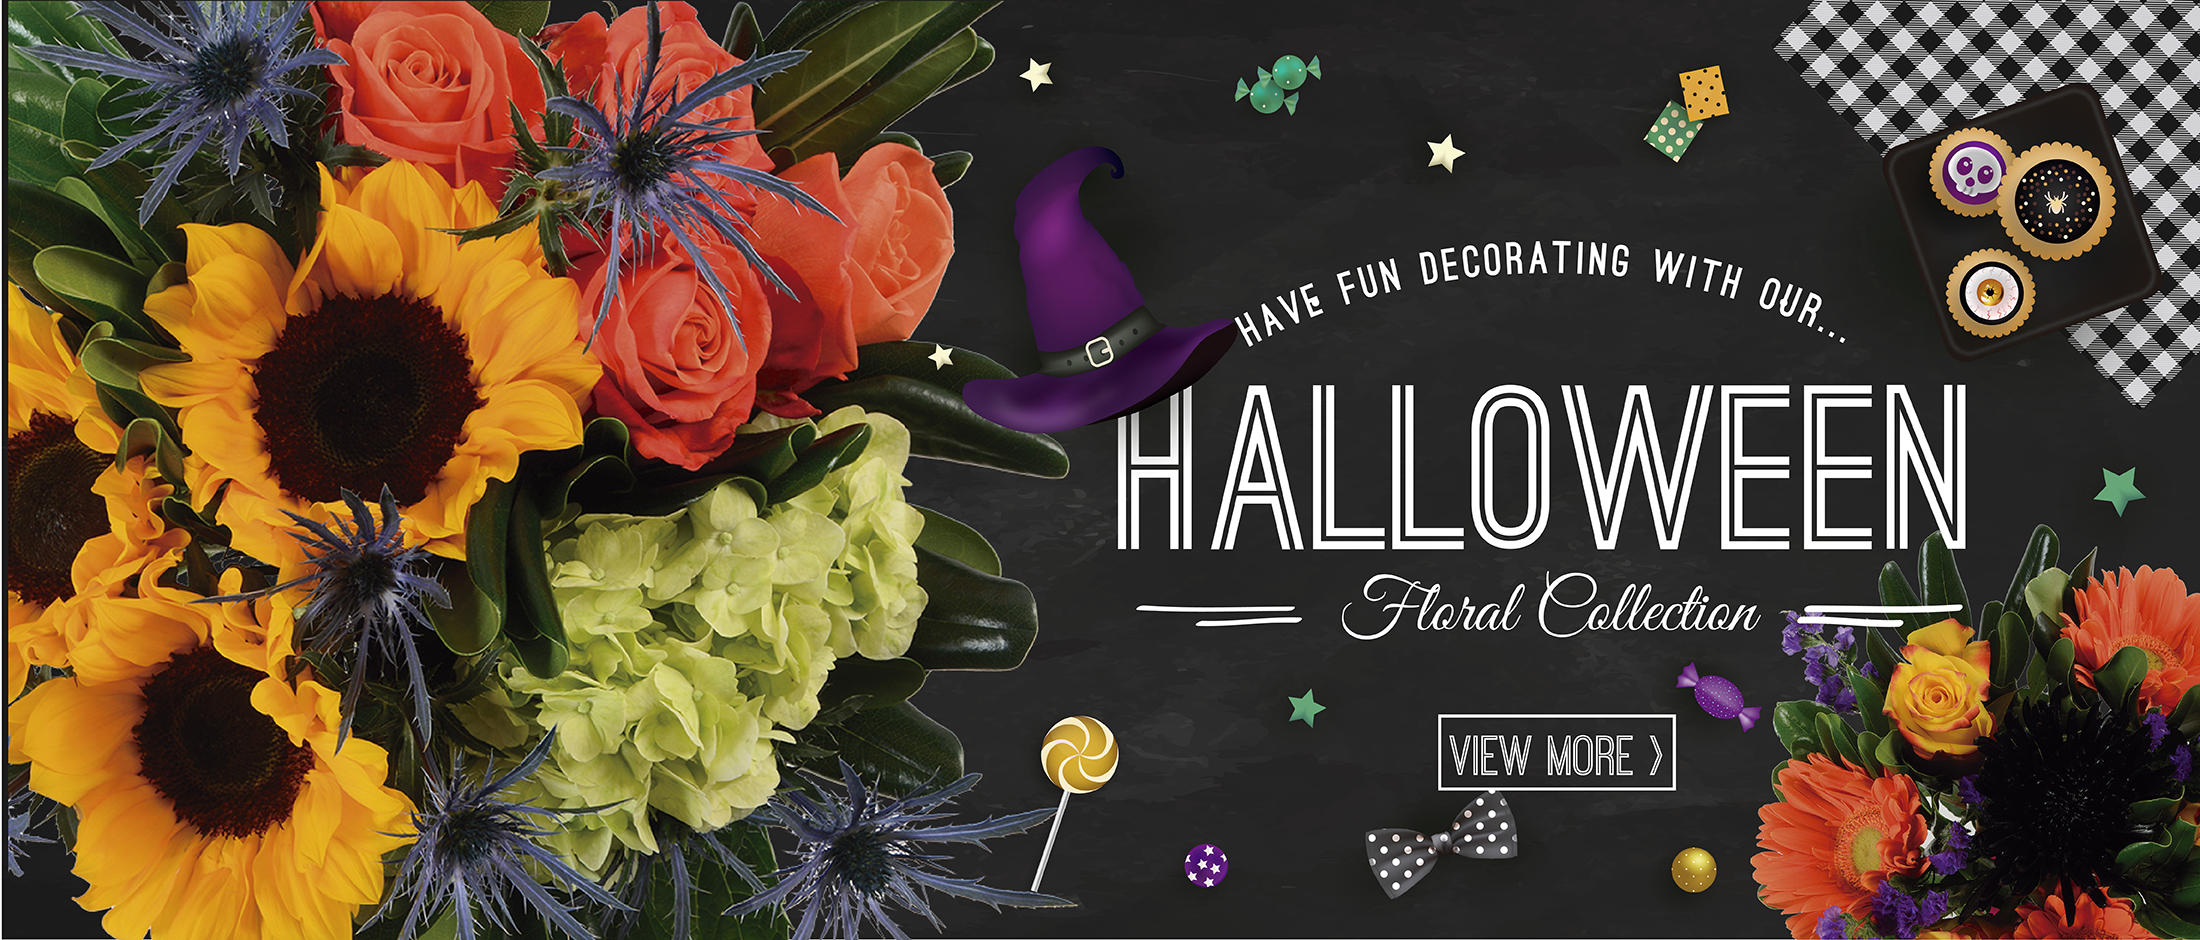 HALLOWEEN FLORAL COLLECTION